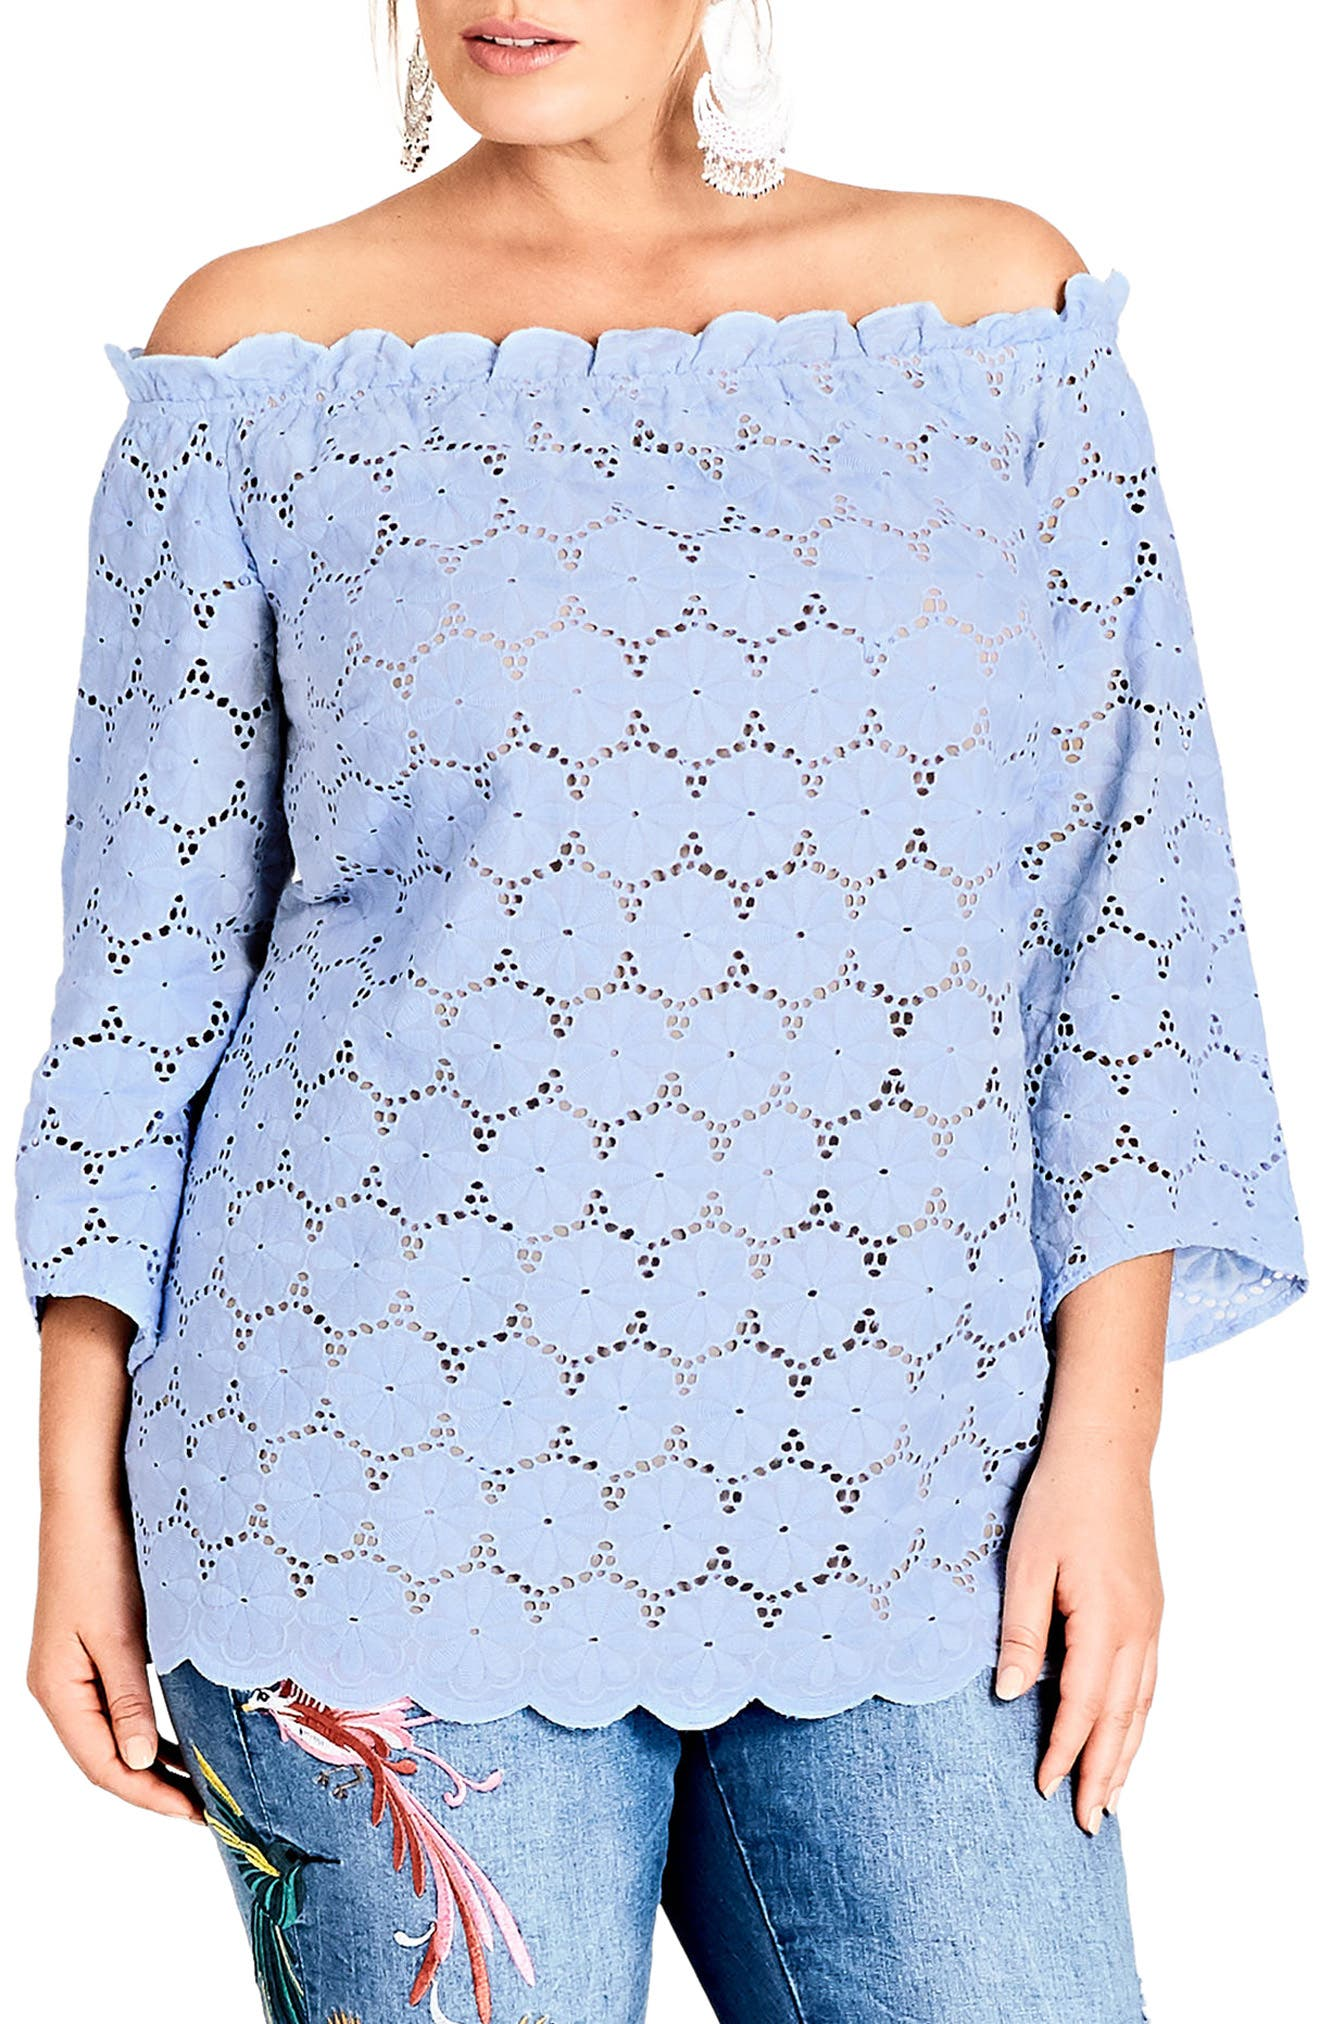 Swiss Affair Lace Off the Shoulder Top,                             Main thumbnail 1, color,                             Powder Blue